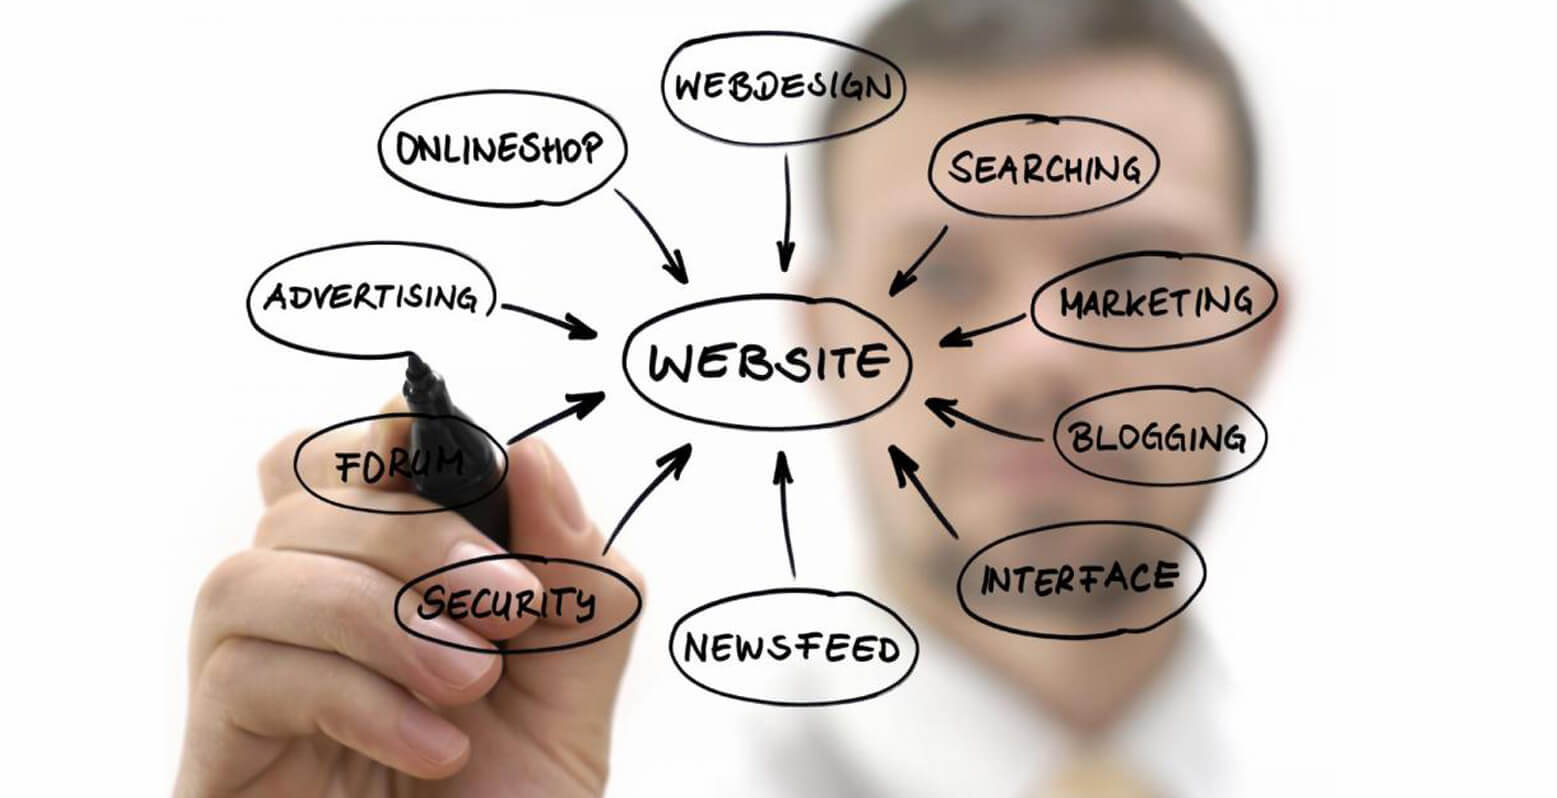 Why website design is important